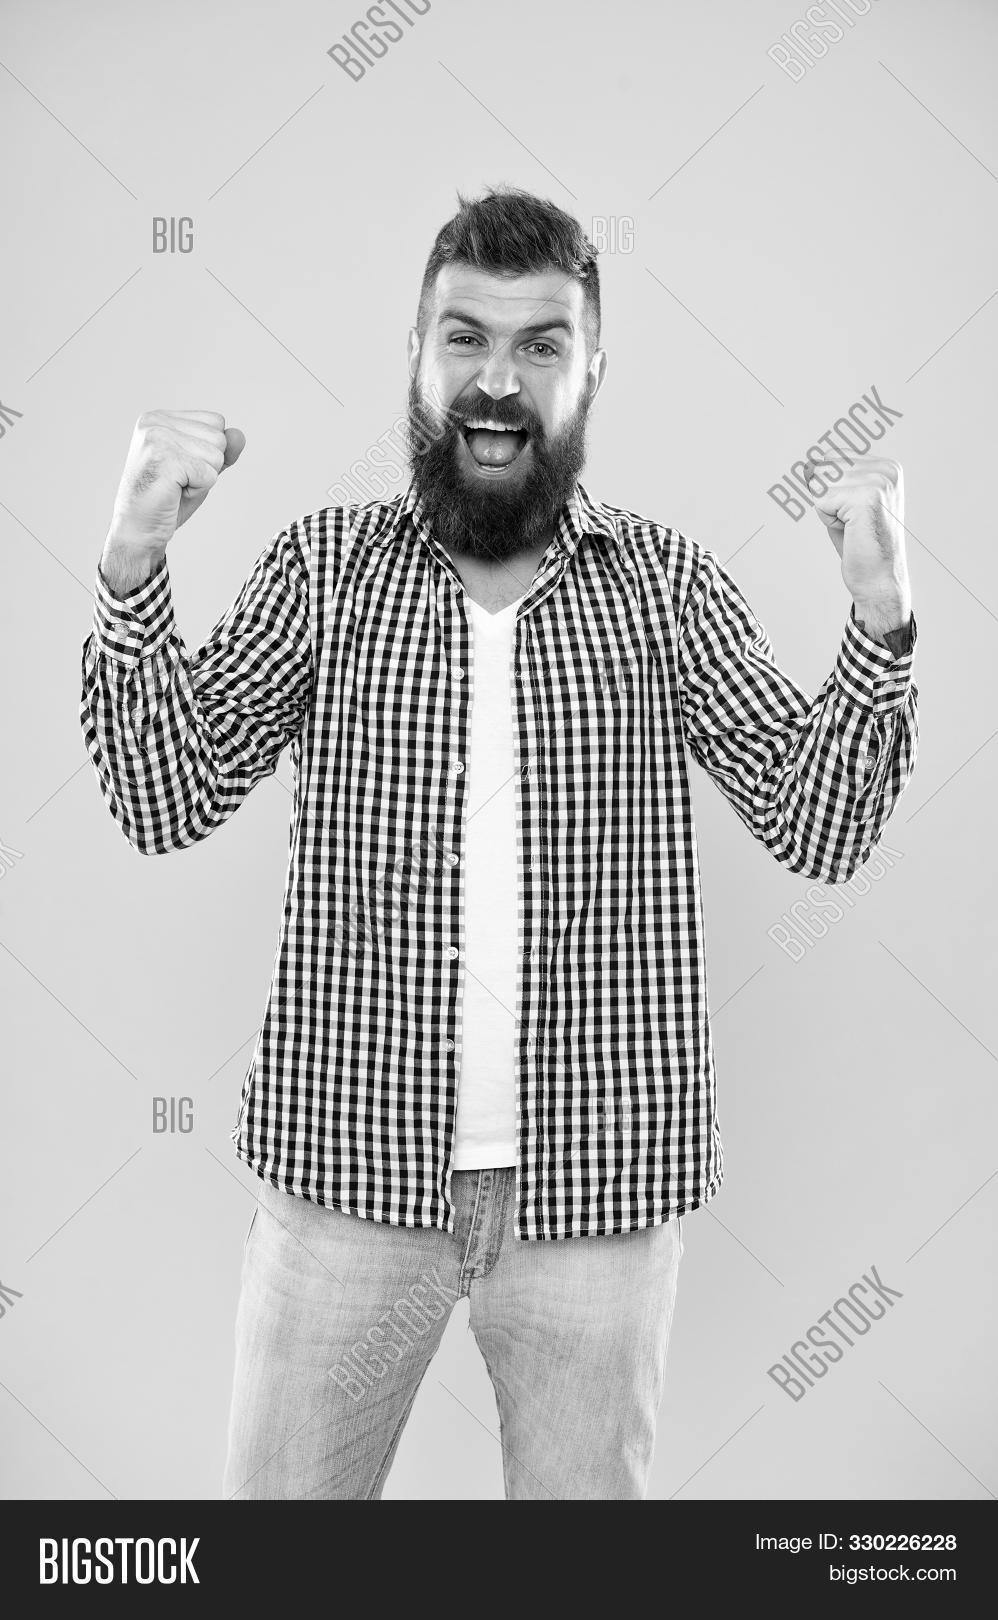 adult,appearance,background,barber,beard,bearded,brutal,care,casual,caucasian,celebrate,cheerful,concept,emotional,expression,face,fashion,fashionable,guy,haircut,hairdresser,handsome,happiness,hipster,lumbersexual,macho,maintain,man,masculine,masculinity,mood,mustache,stylish,success,successful,tips,unshaven,win,winner,yellow